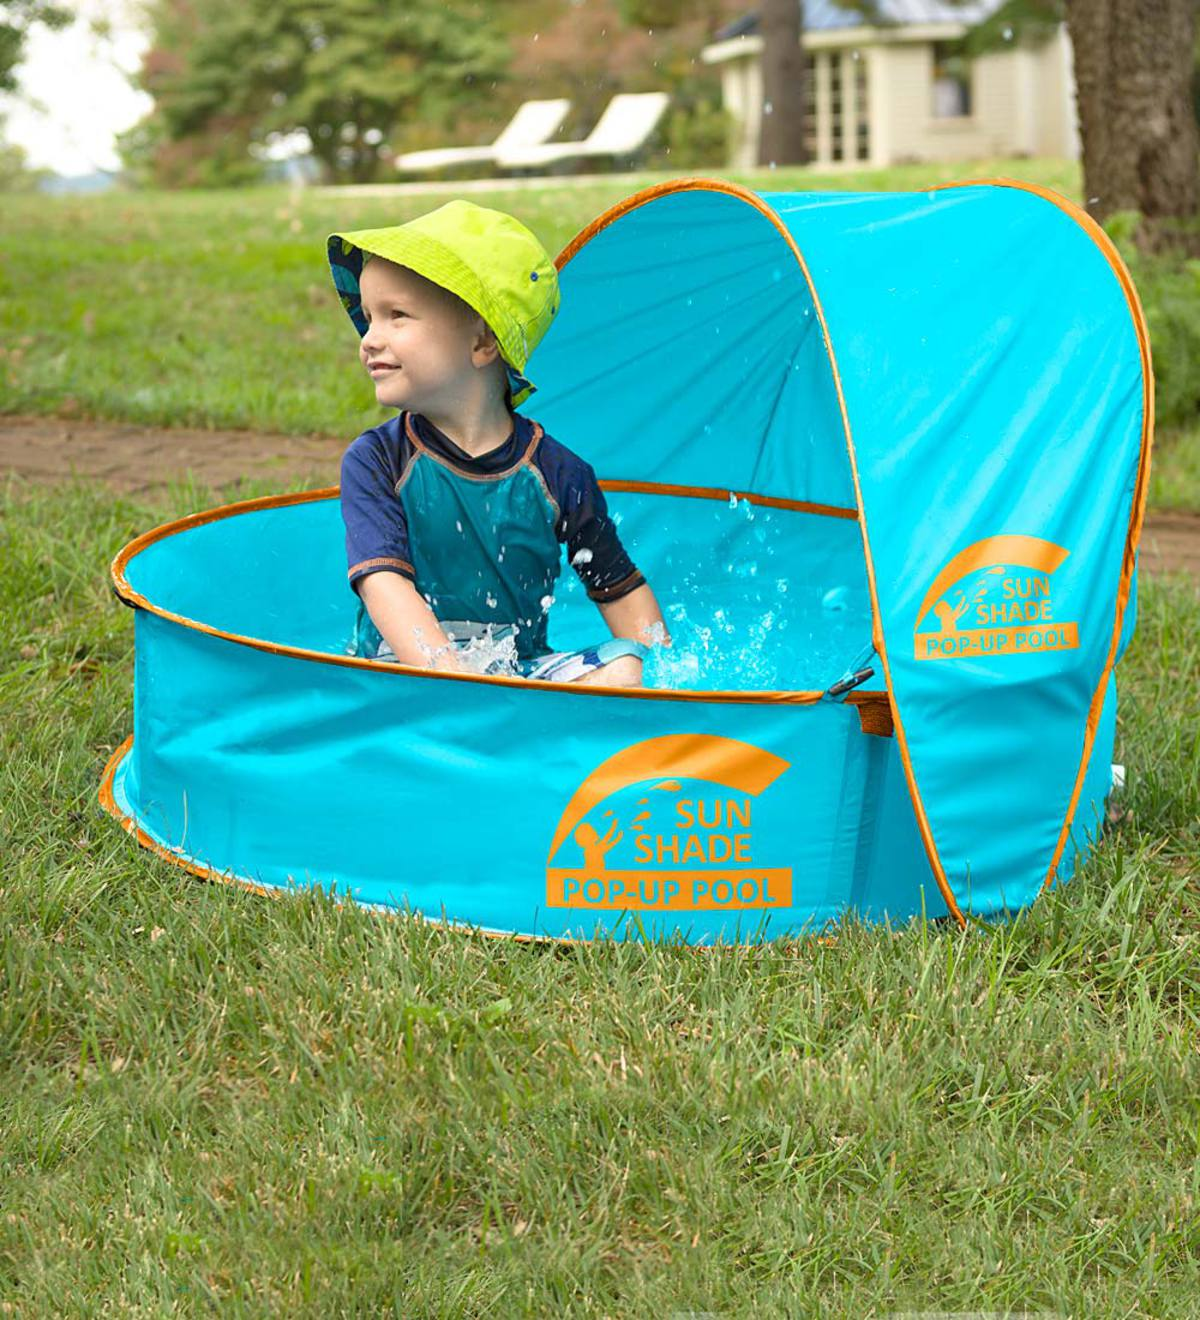 SunShade® Pop-Up Pool